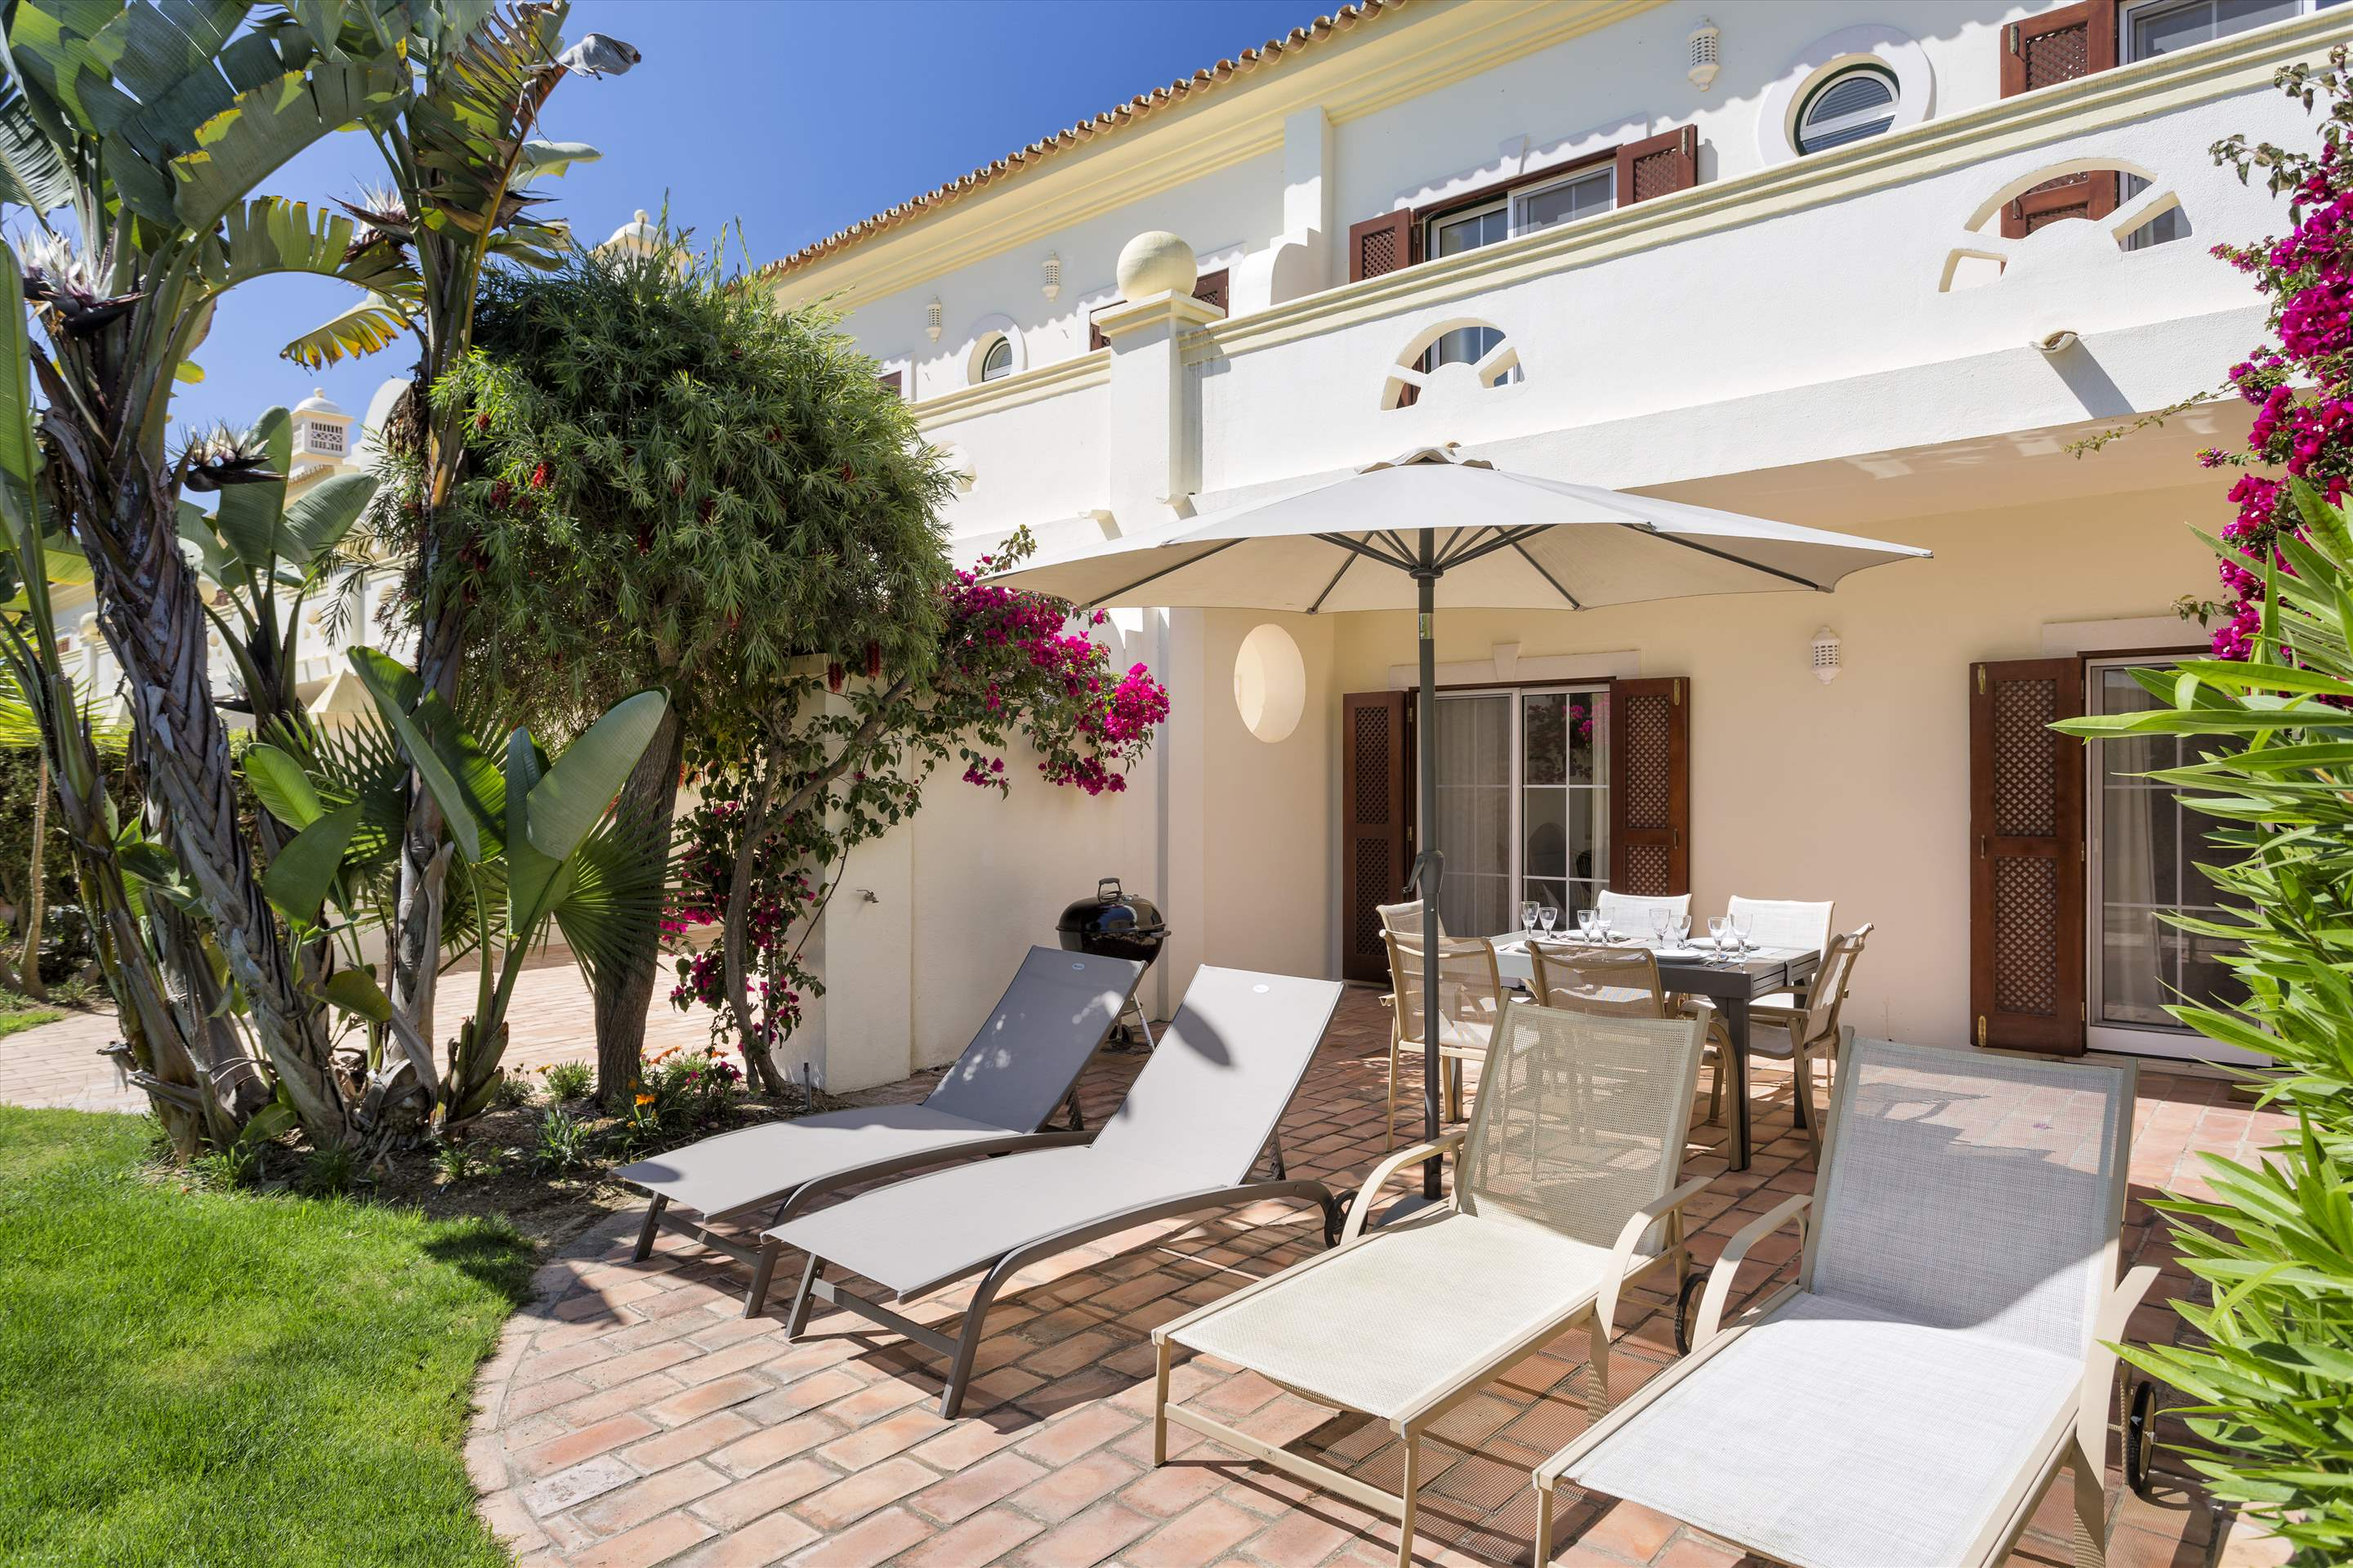 Townhouse Jessica, 3 bedroom villa in Quinta do Lago, Algarve